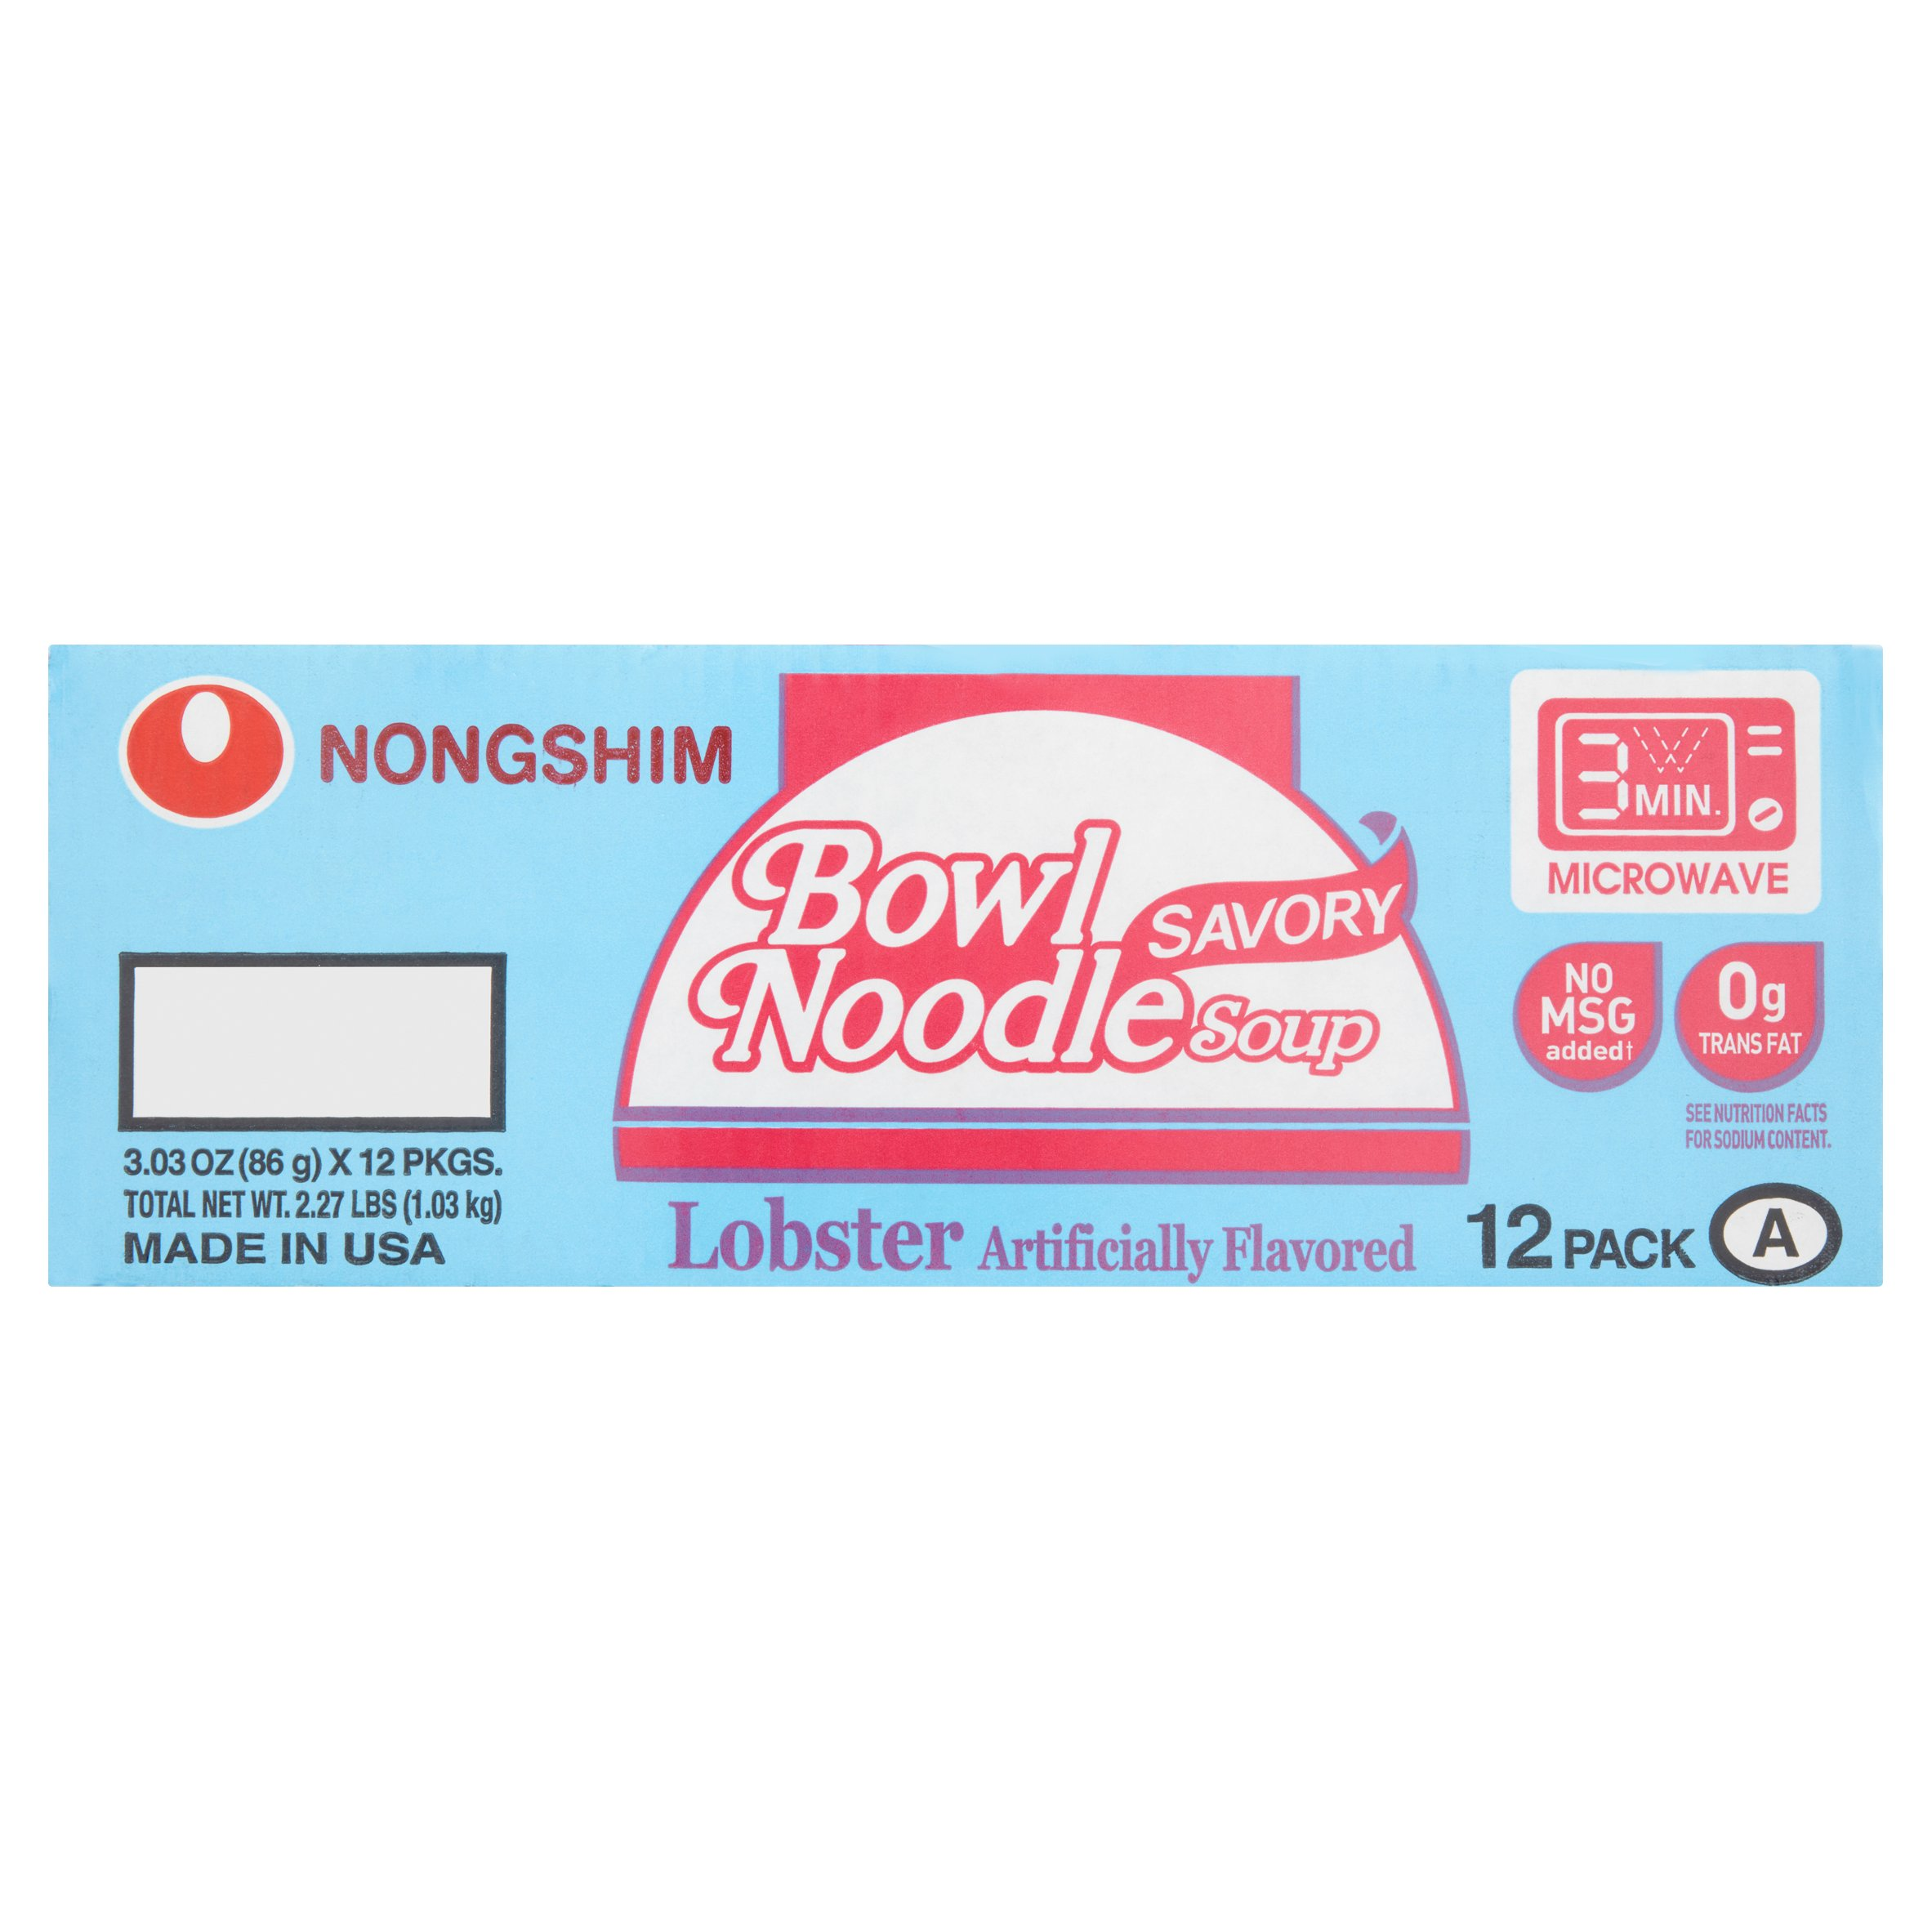 Nongshim Savory Lobster Bowl Noodle Soup, 3.03 oz, (Pack of 12) by Nongshim America, Inc.